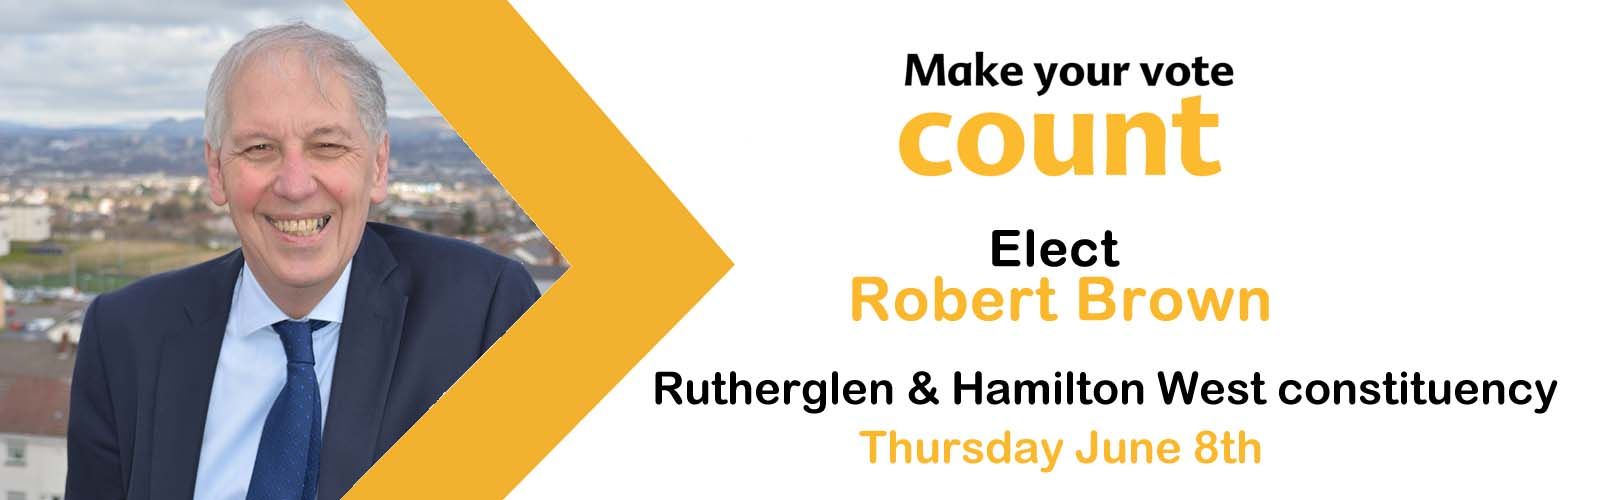 Vote Robert Brown -Rutherglen & Hamilton West seat 2017